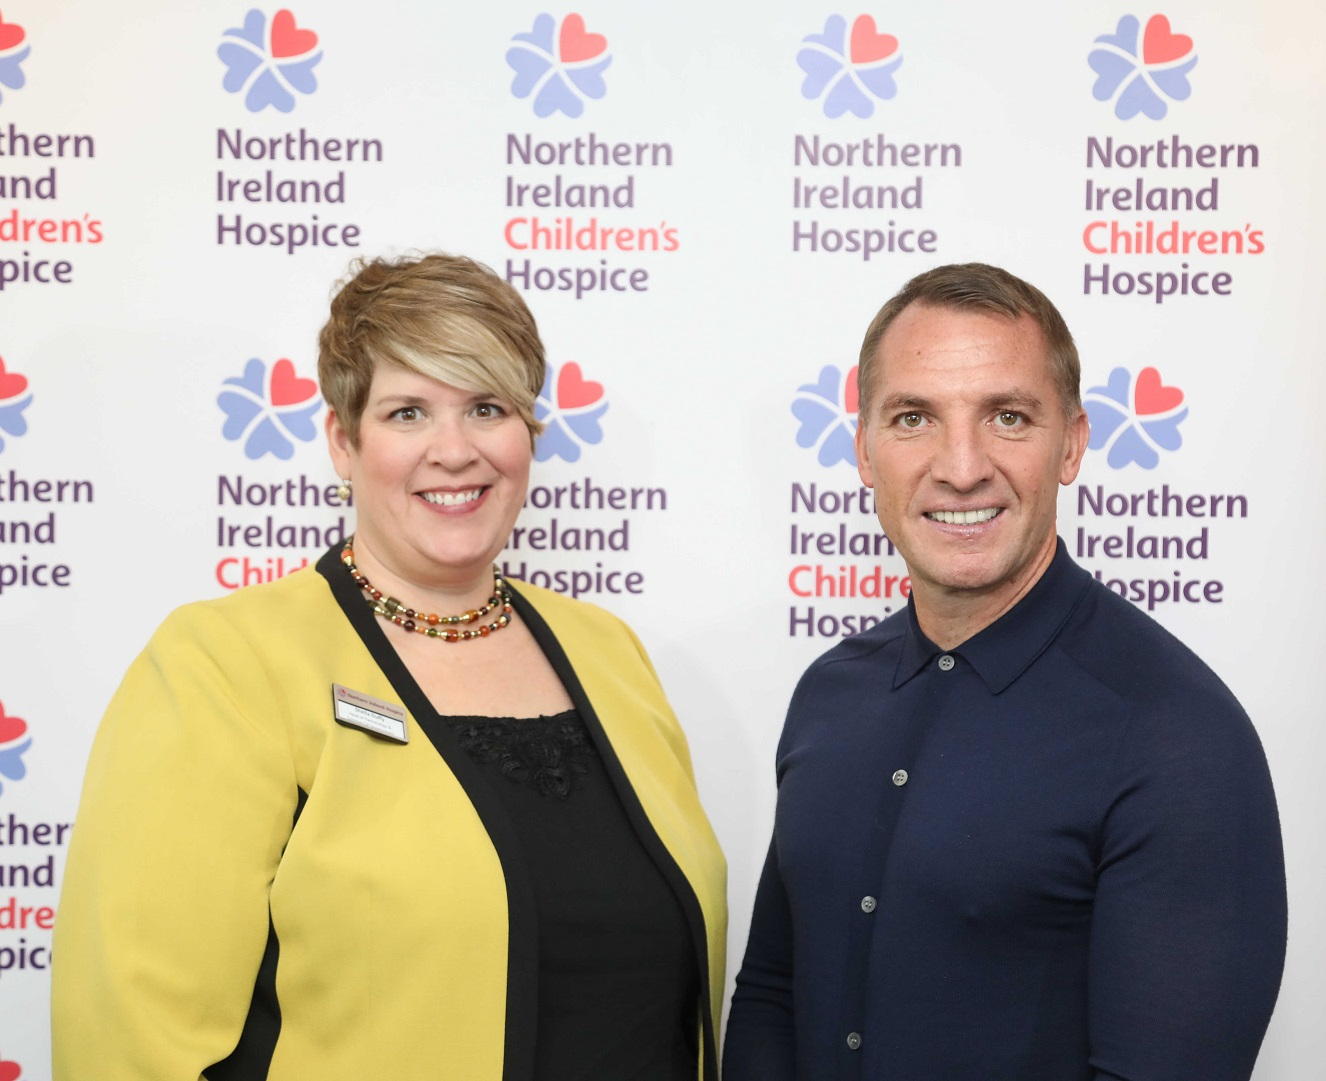 Premier League boss calls on businesses to support Northern Ireland Hospice